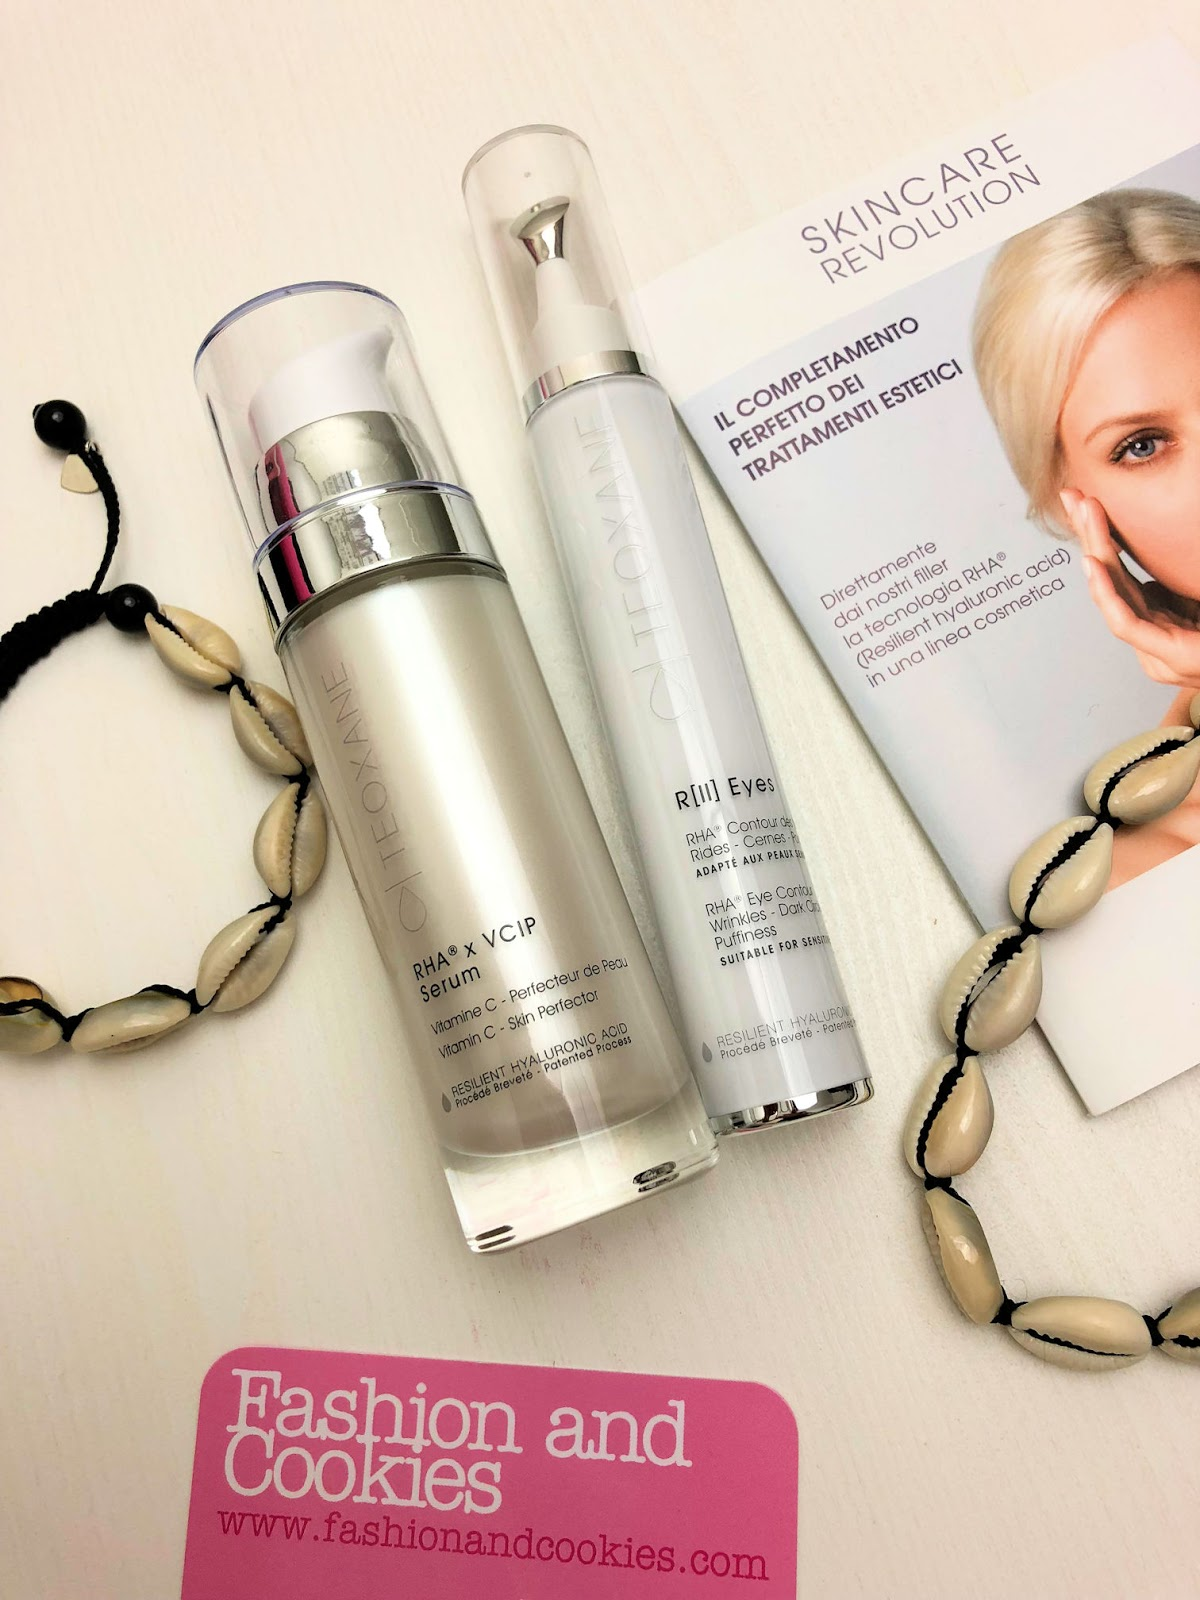 Teoxane Skincare Revolution le migliori creme antirughe on Fashion and Cookies beauty blog,  beauty blogger